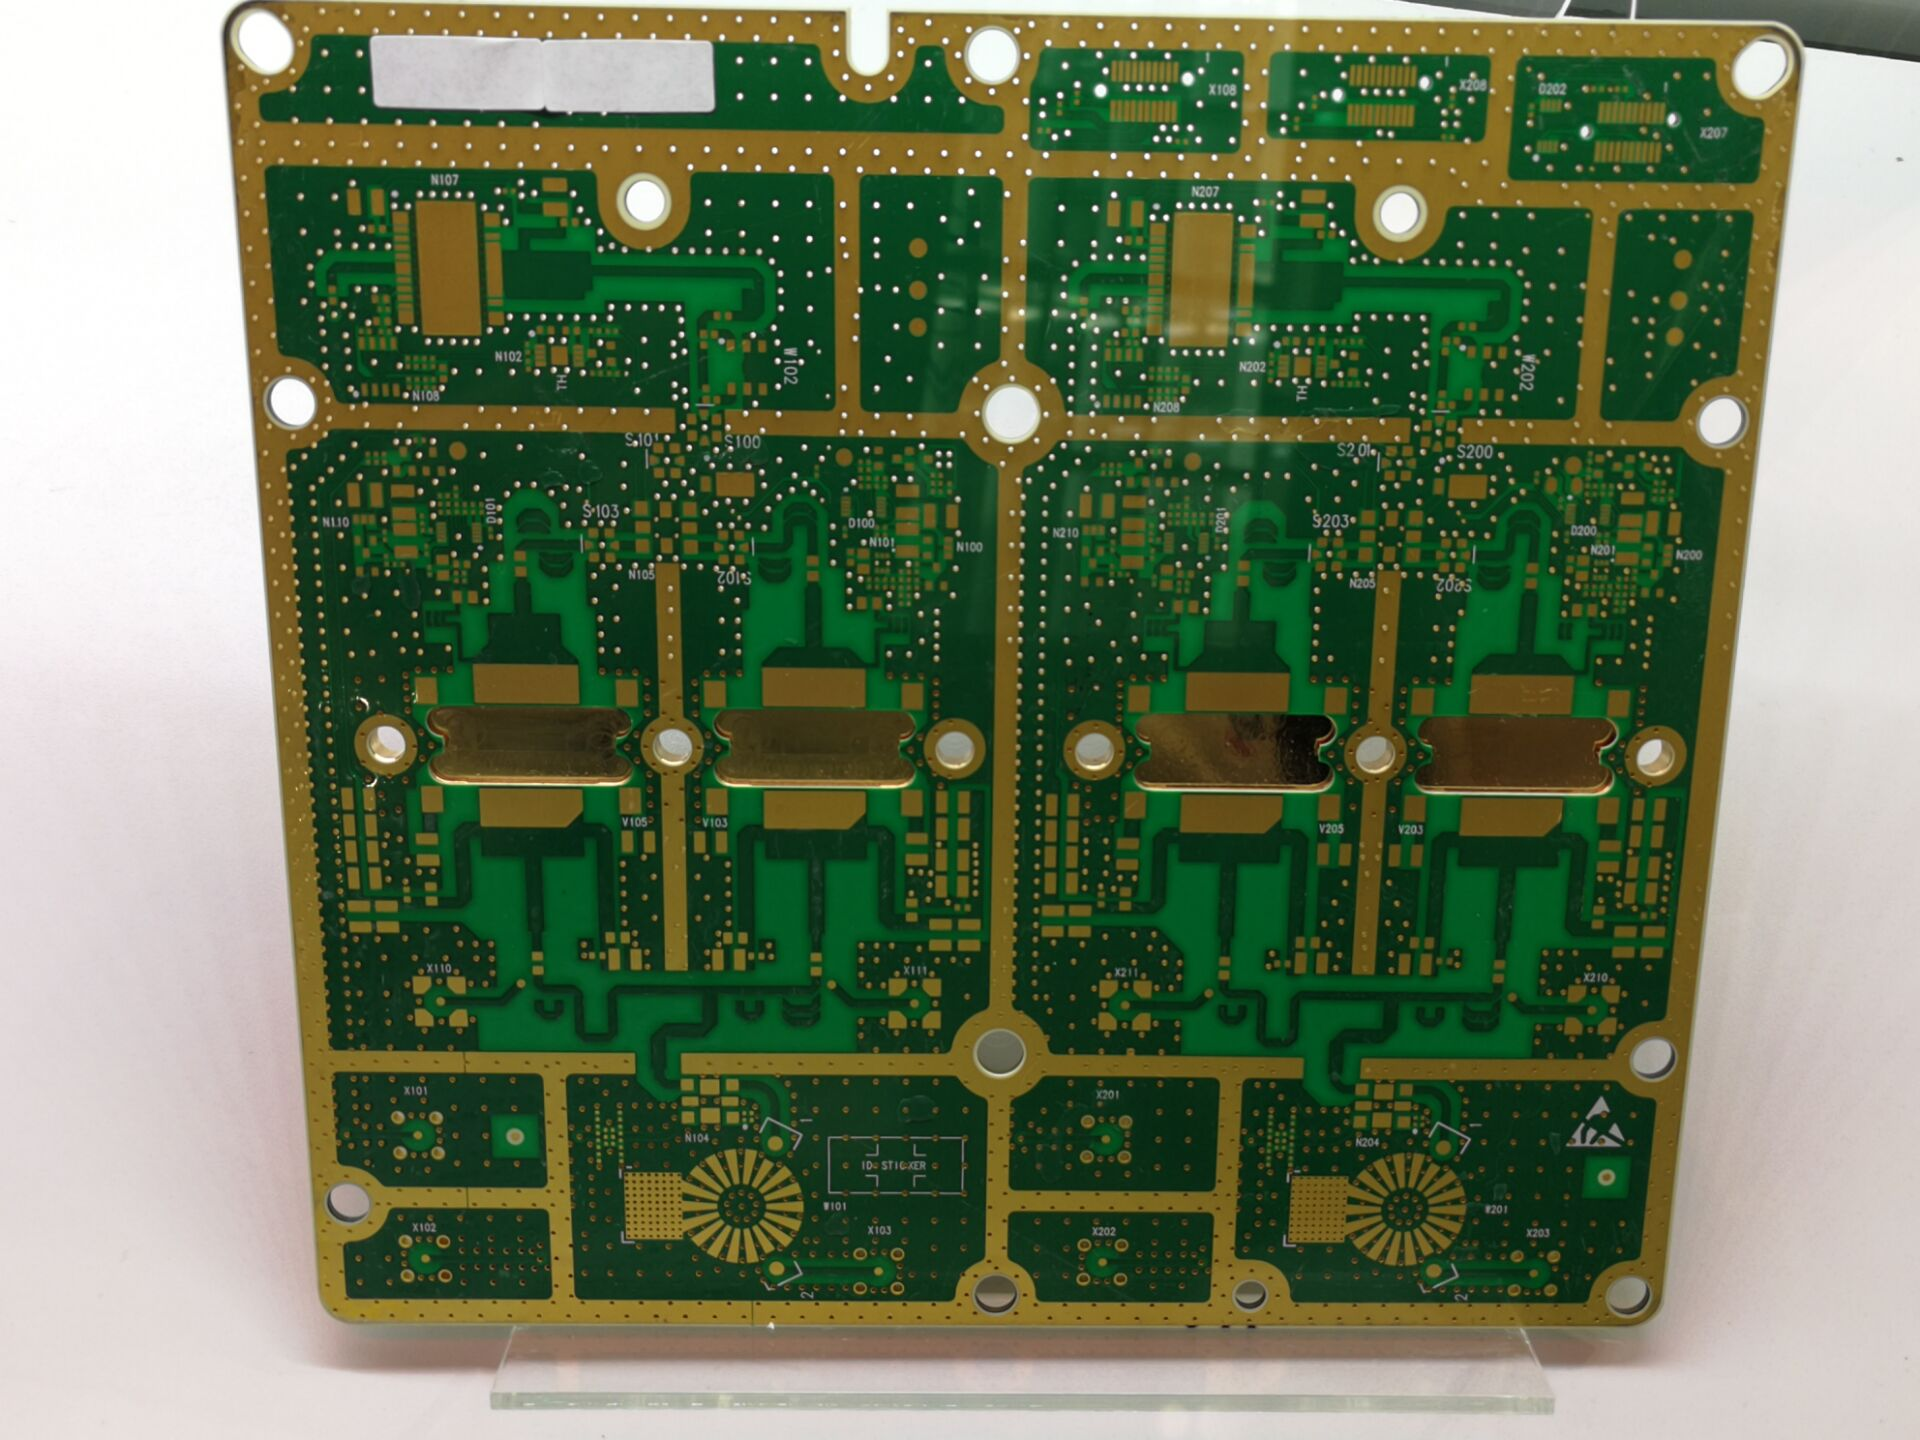 The future development trend of PCB & Flexible PCB industry